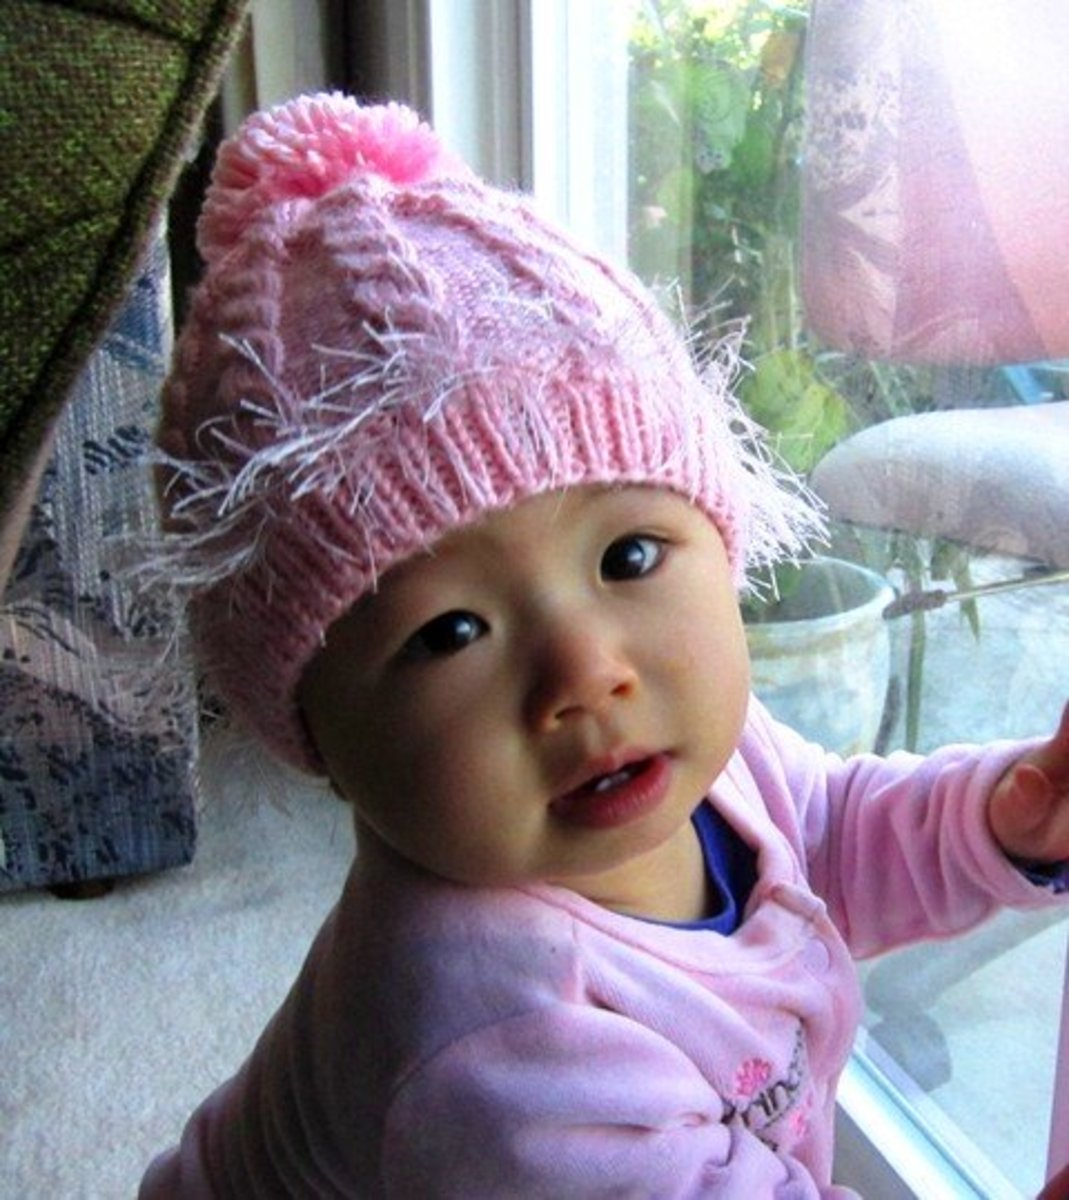 Baby Knitted Hat Patterns On Circular Needles : How to Knit a Baby Hat with Double Pointed Needles! Pink Cabled Baby Hat Free...